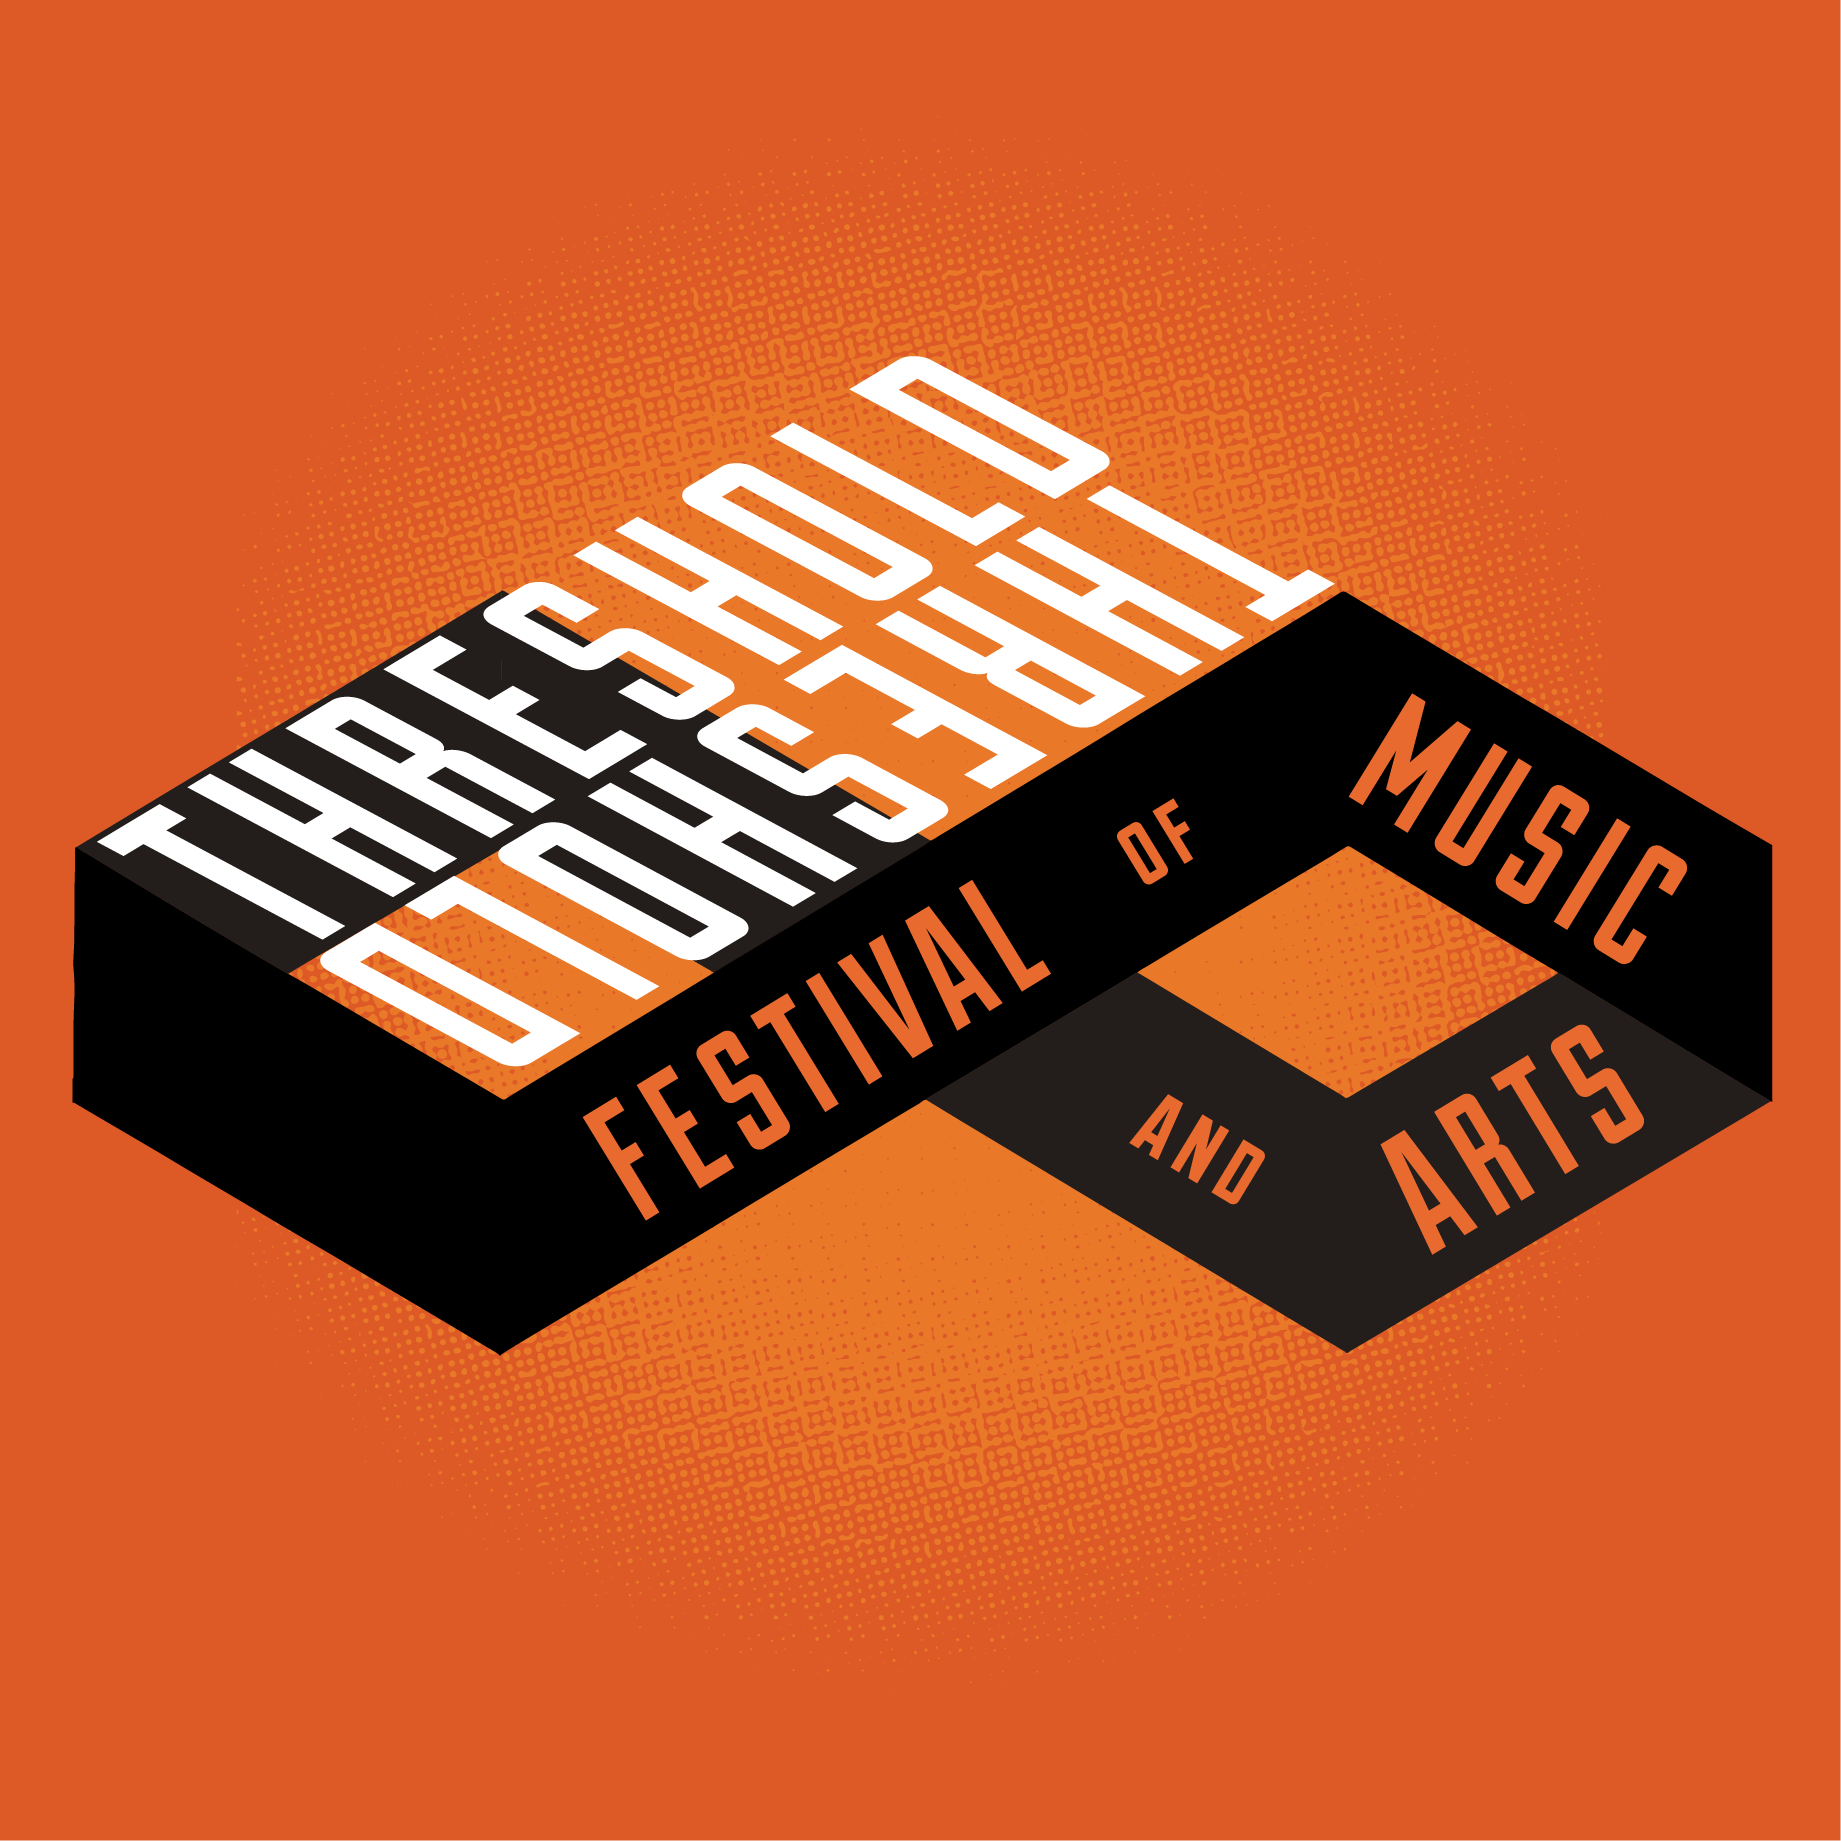 Threshold Festival Of Music And Arts 2019